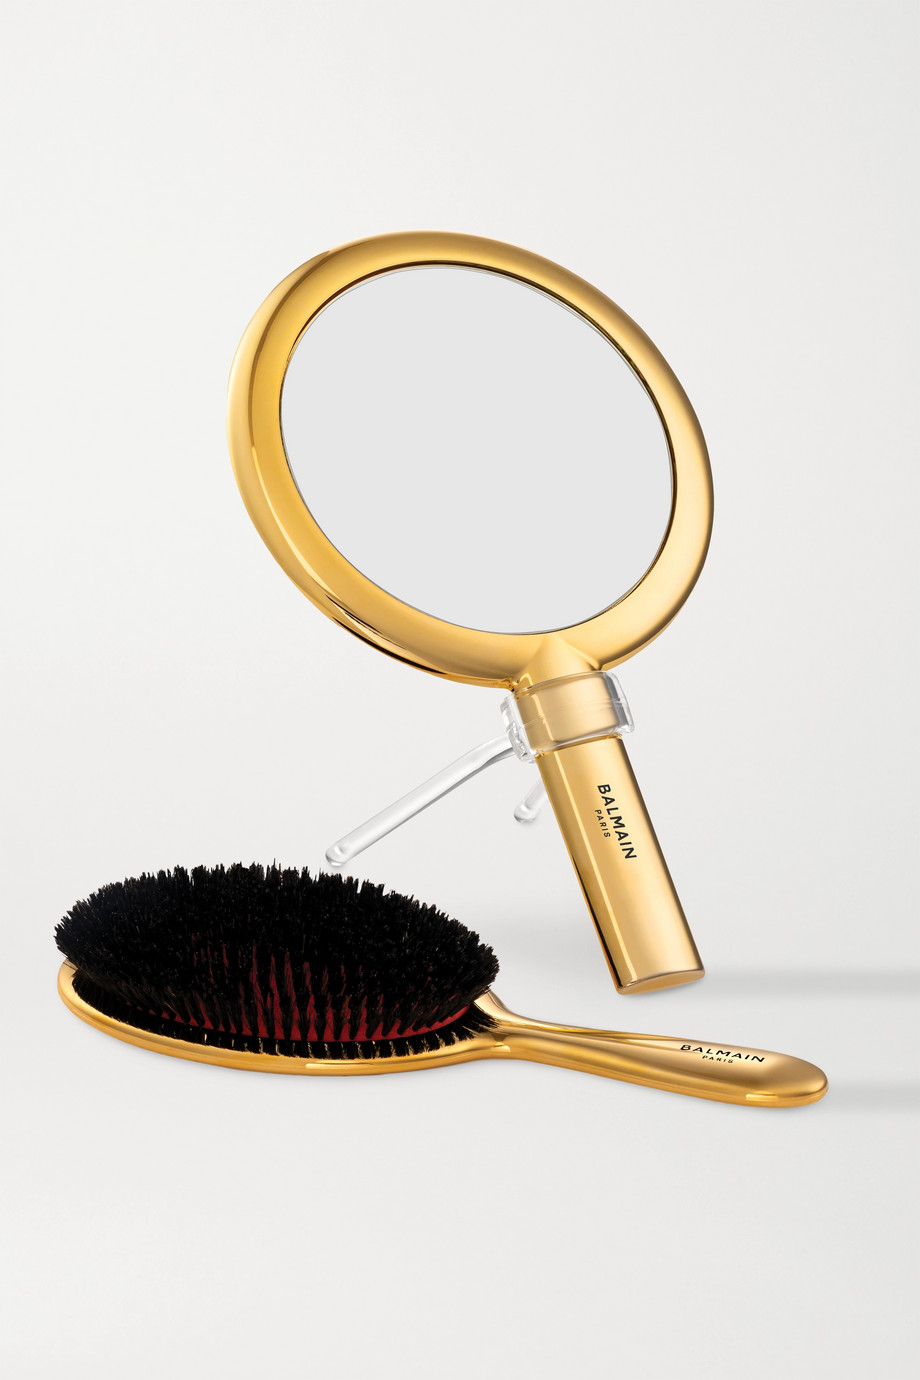 Balmain Paris Hair Couture Gold-plated Spa Brush & Hand Mirror Set – Goldfarbenes Set aus Haarbürste und Handspiegel